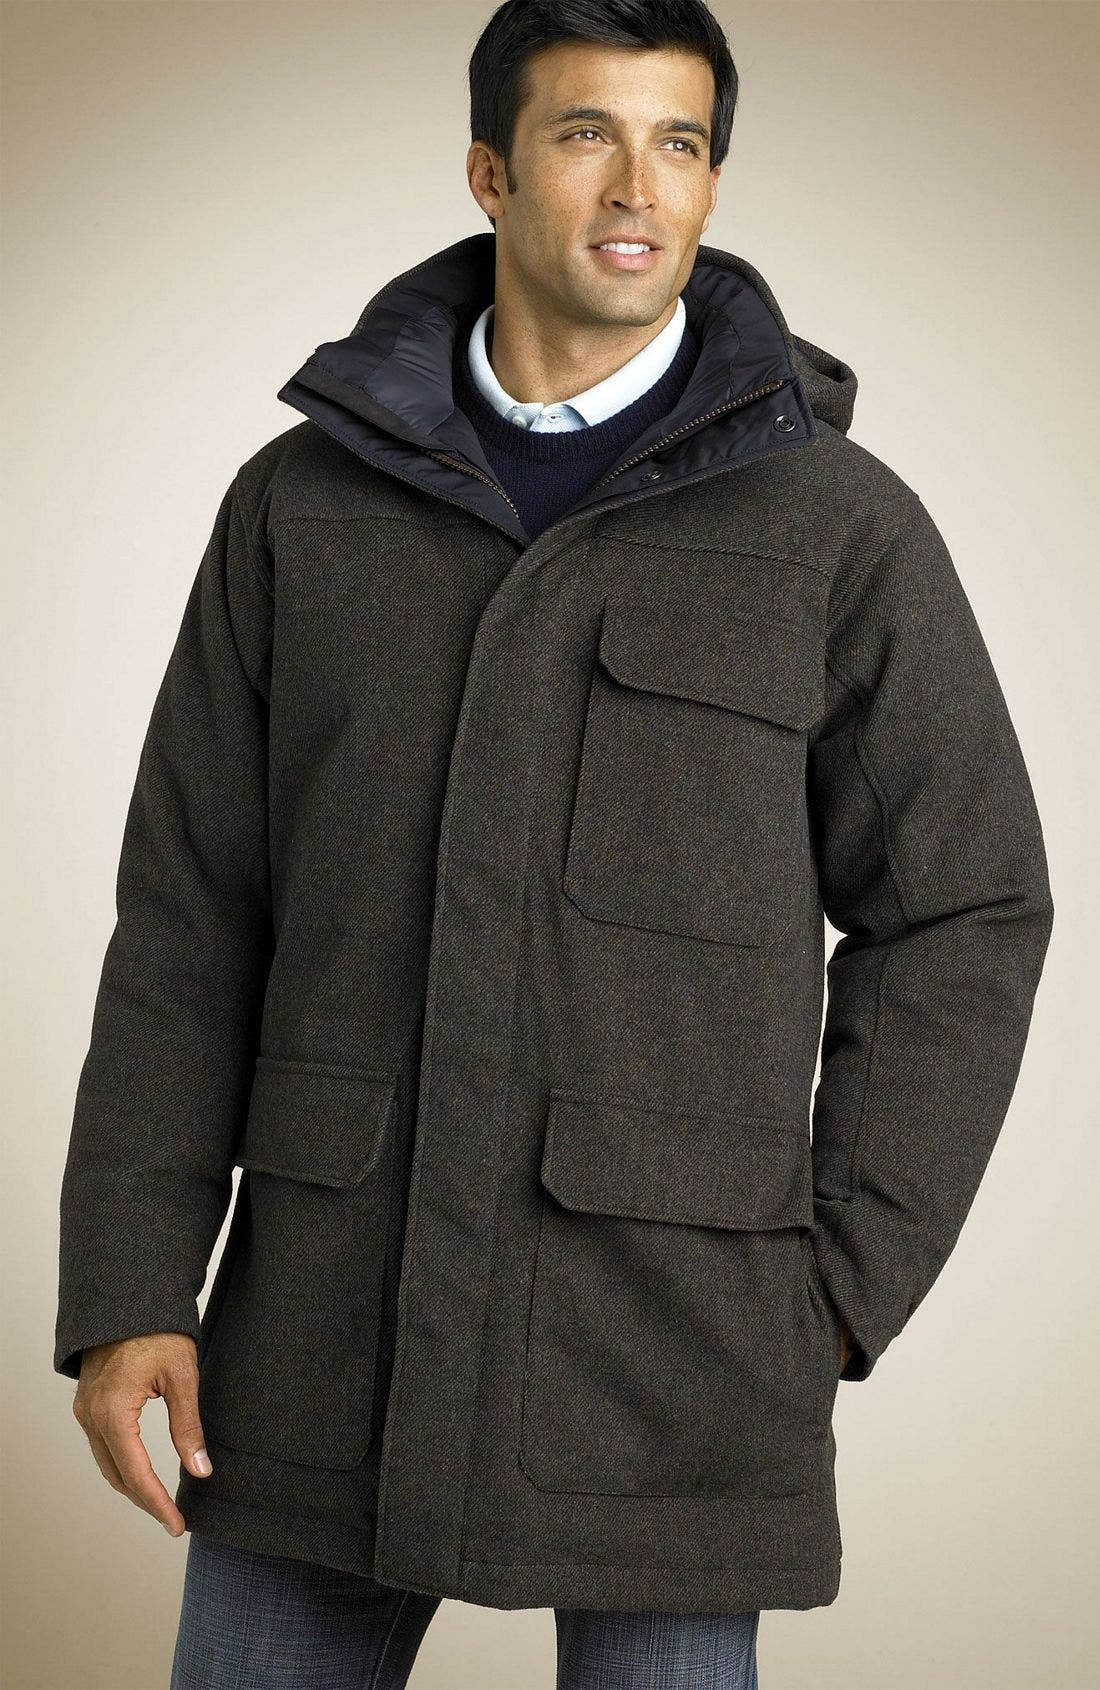 Main Image - The North Face 485 Collection 'Tellurium' Tweed Jacket